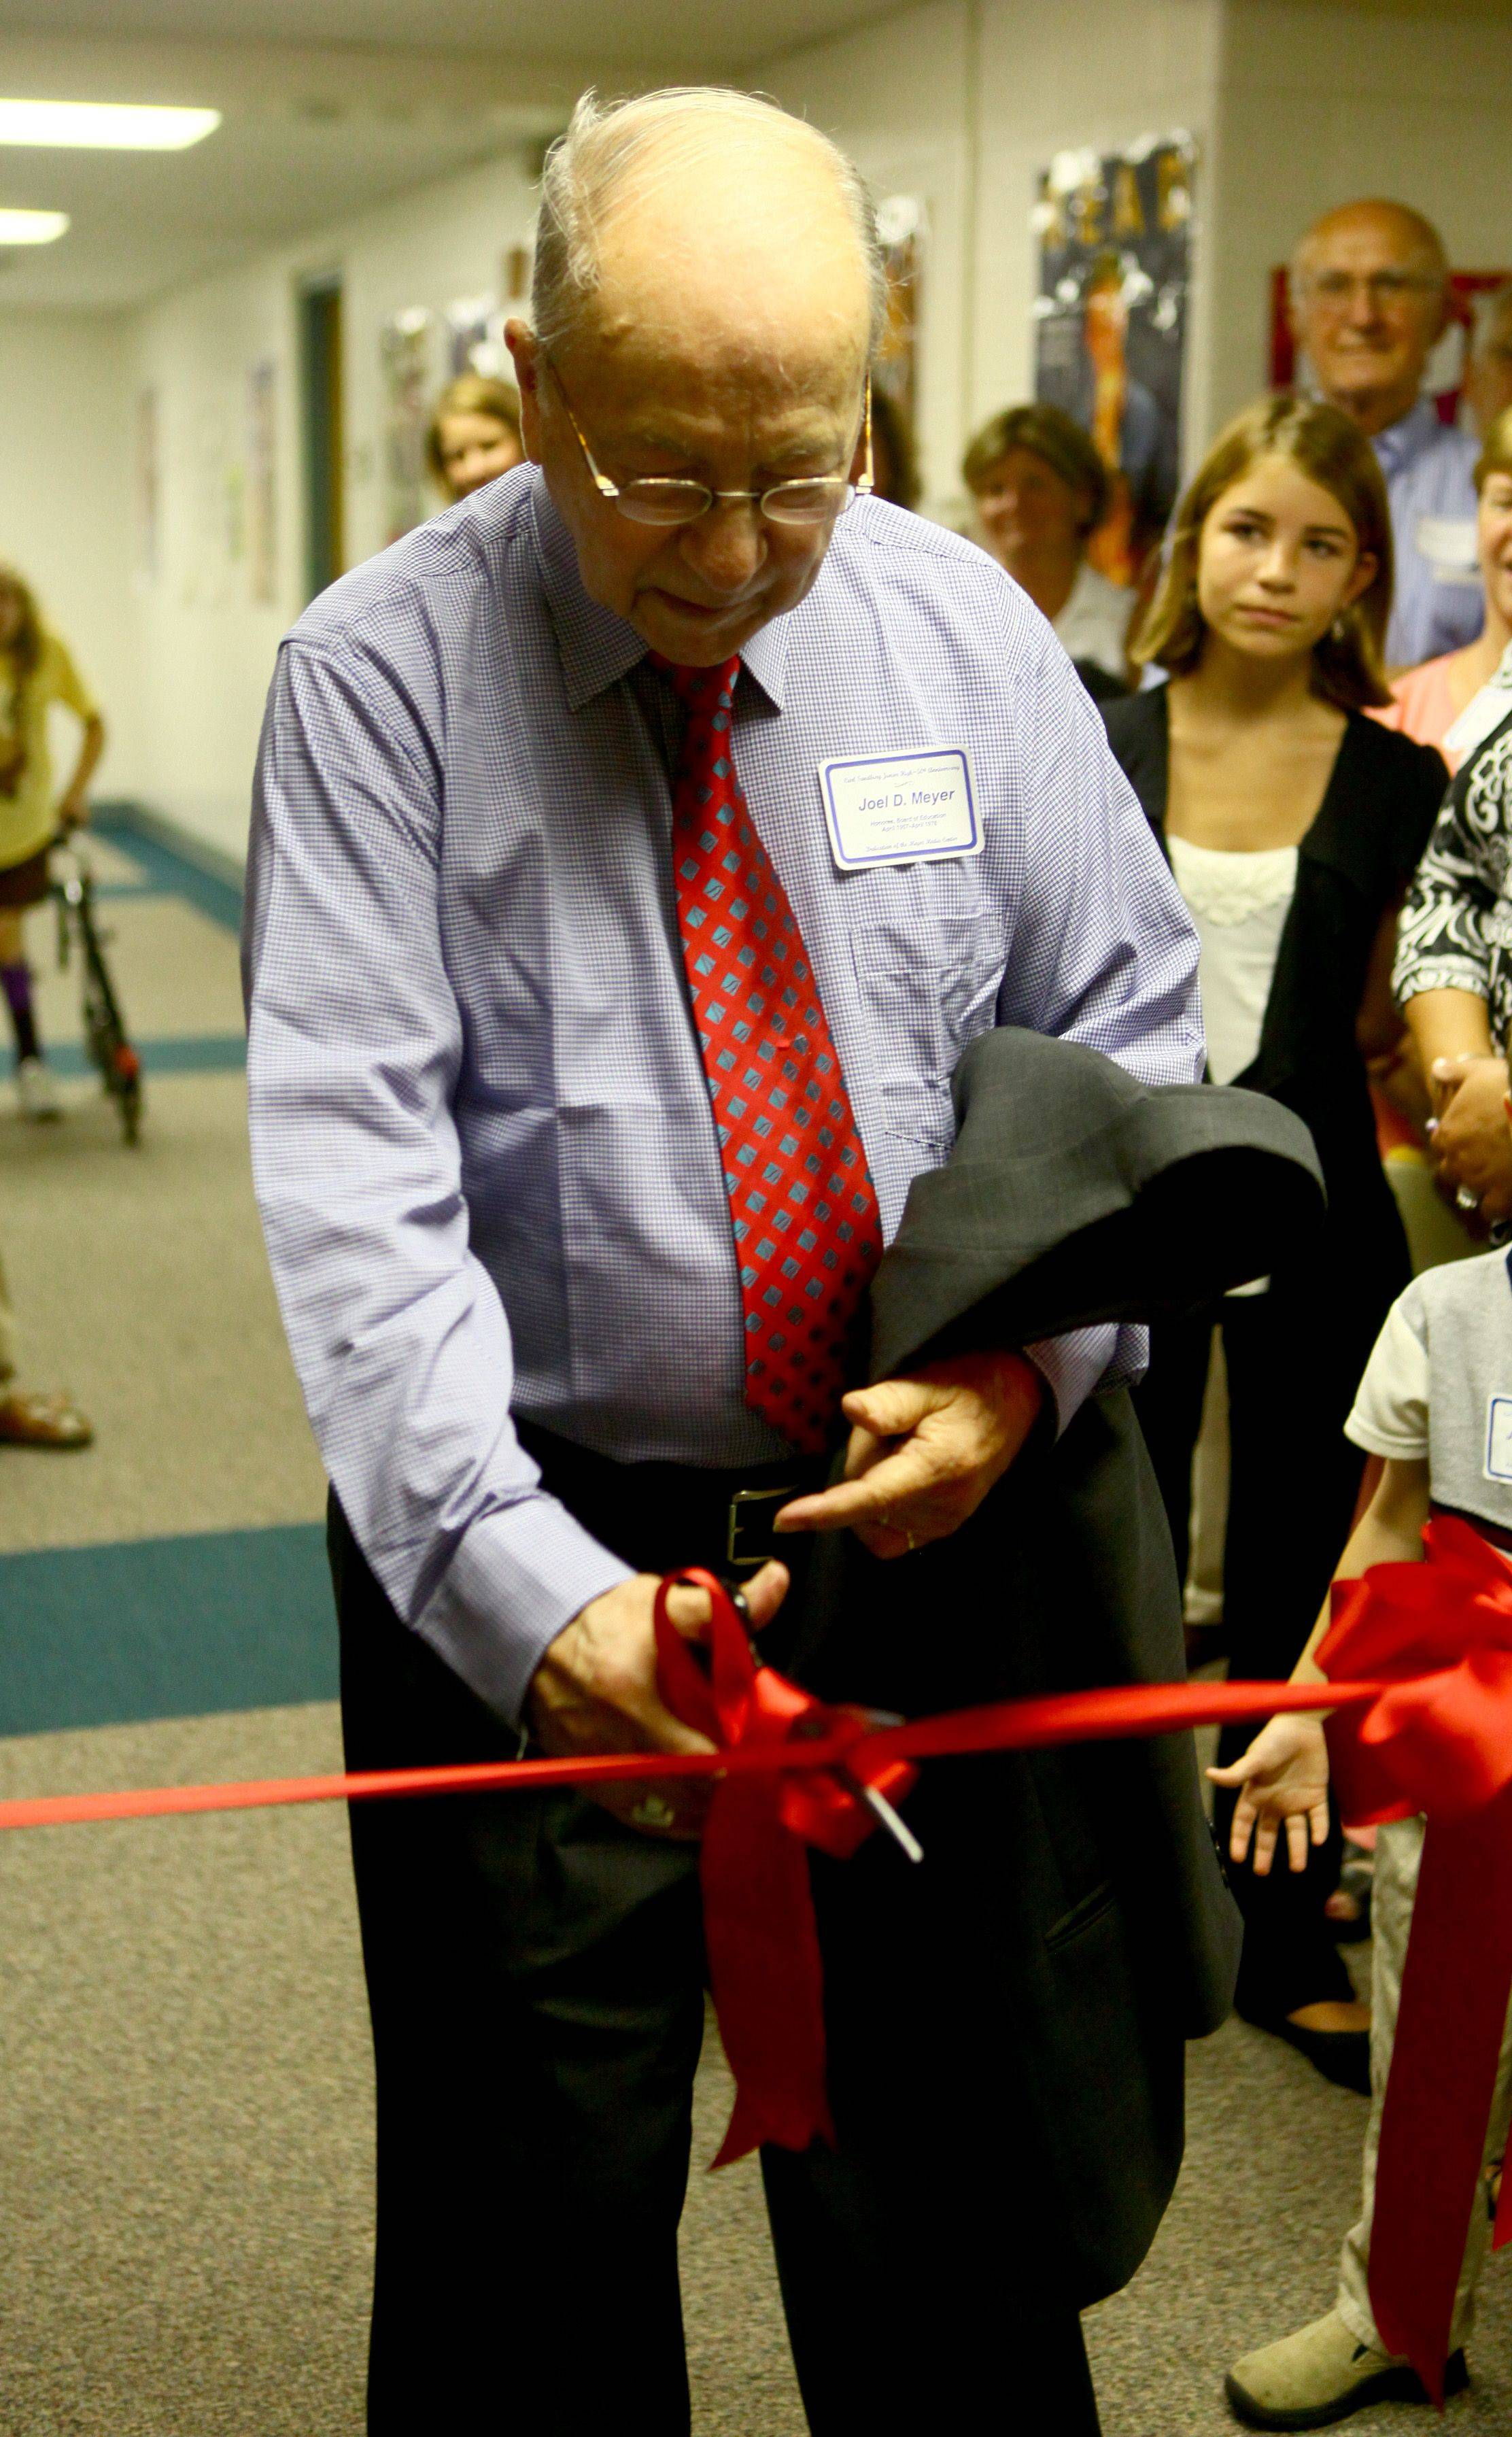 Joel Meyer cuts the ribbon to open the renamed media center at Carl Sandburg Junior High in Rolling Meadows.